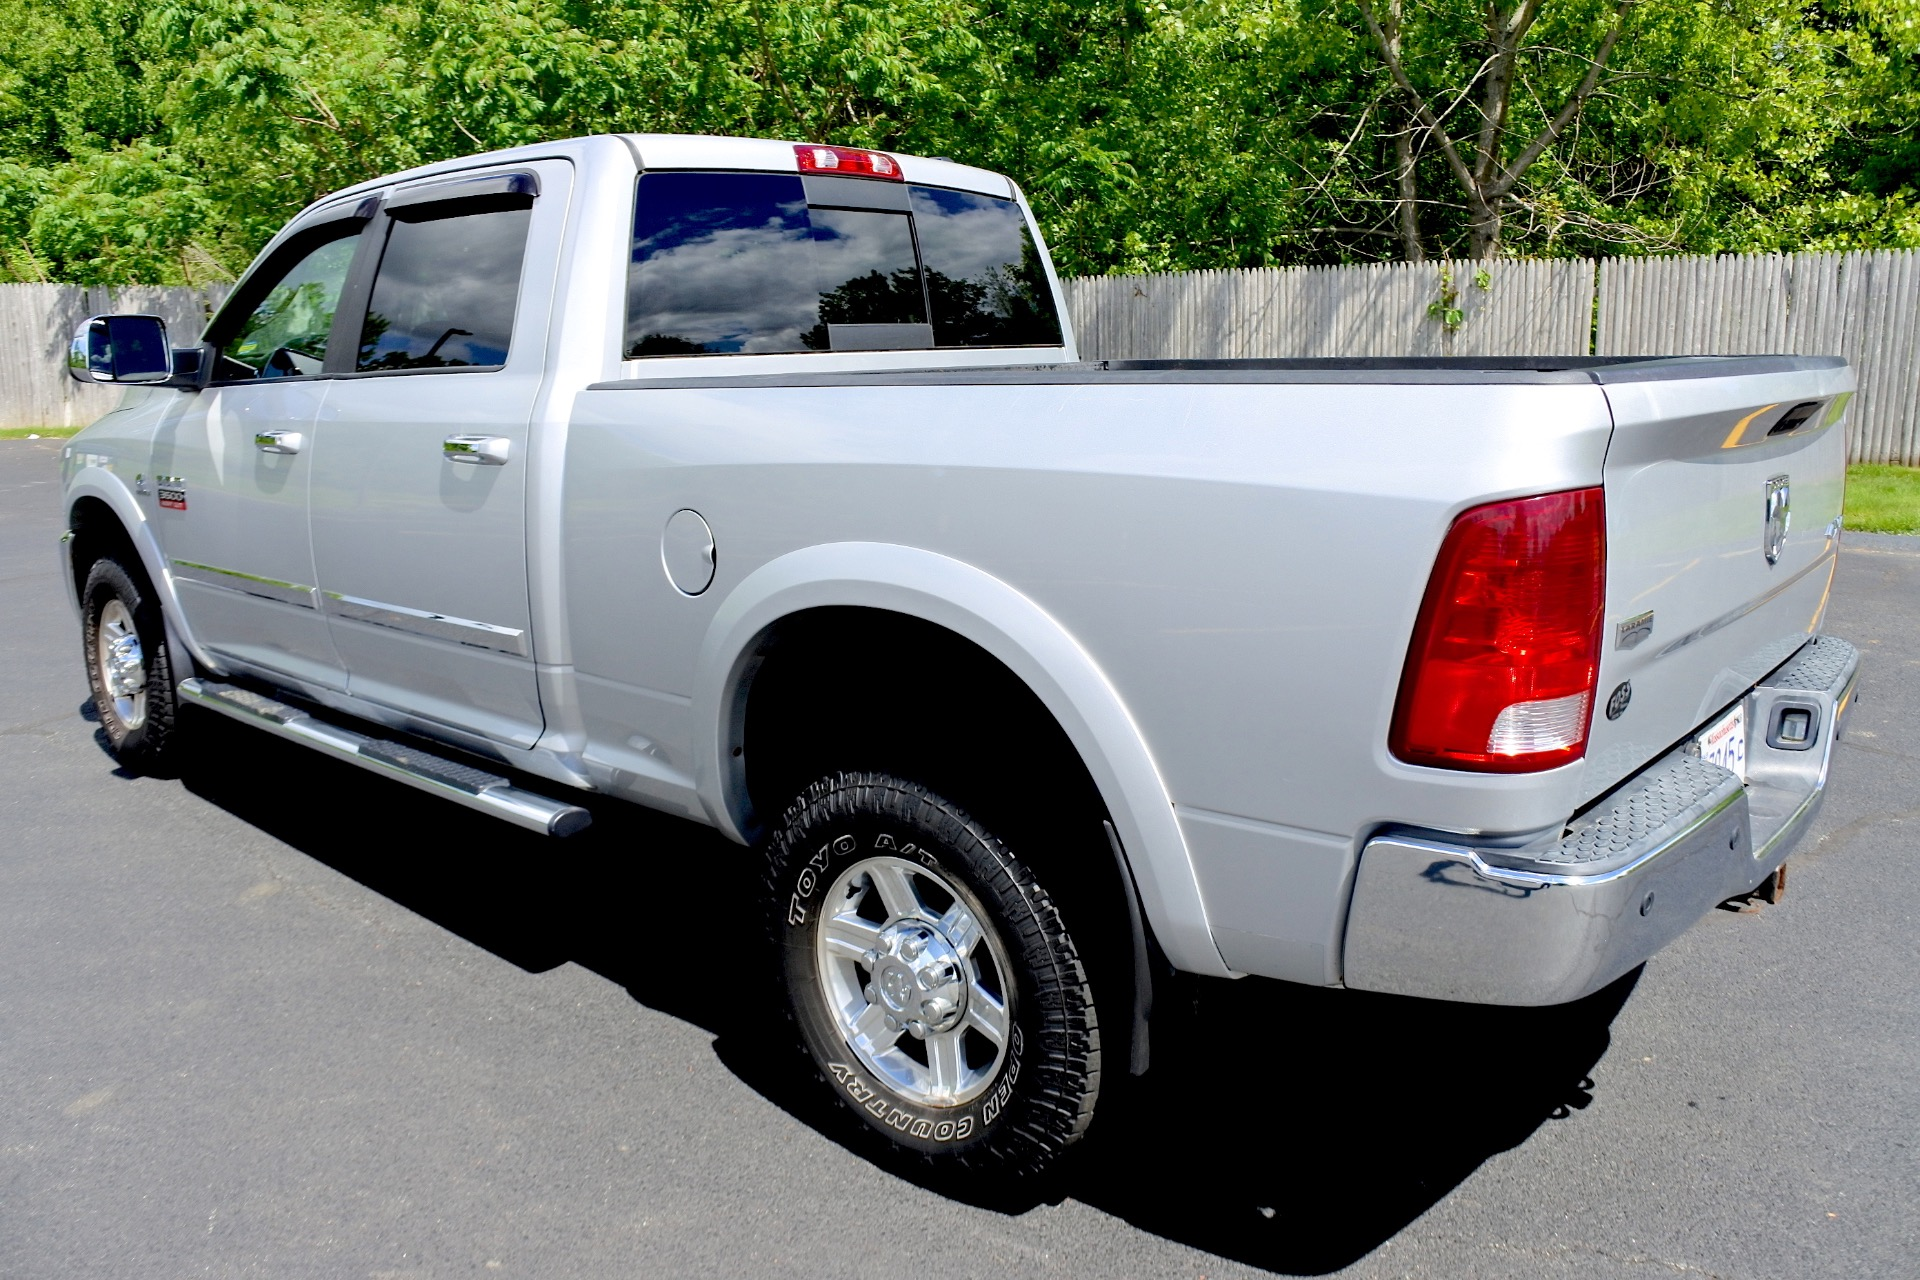 Used 2010 Dodge Ram 3500 4WD Crew Cab 149' Laramie Used 2010 Dodge Ram 3500 4WD Crew Cab 149' Laramie for sale  at Metro West Motorcars LLC in Shrewsbury MA 3